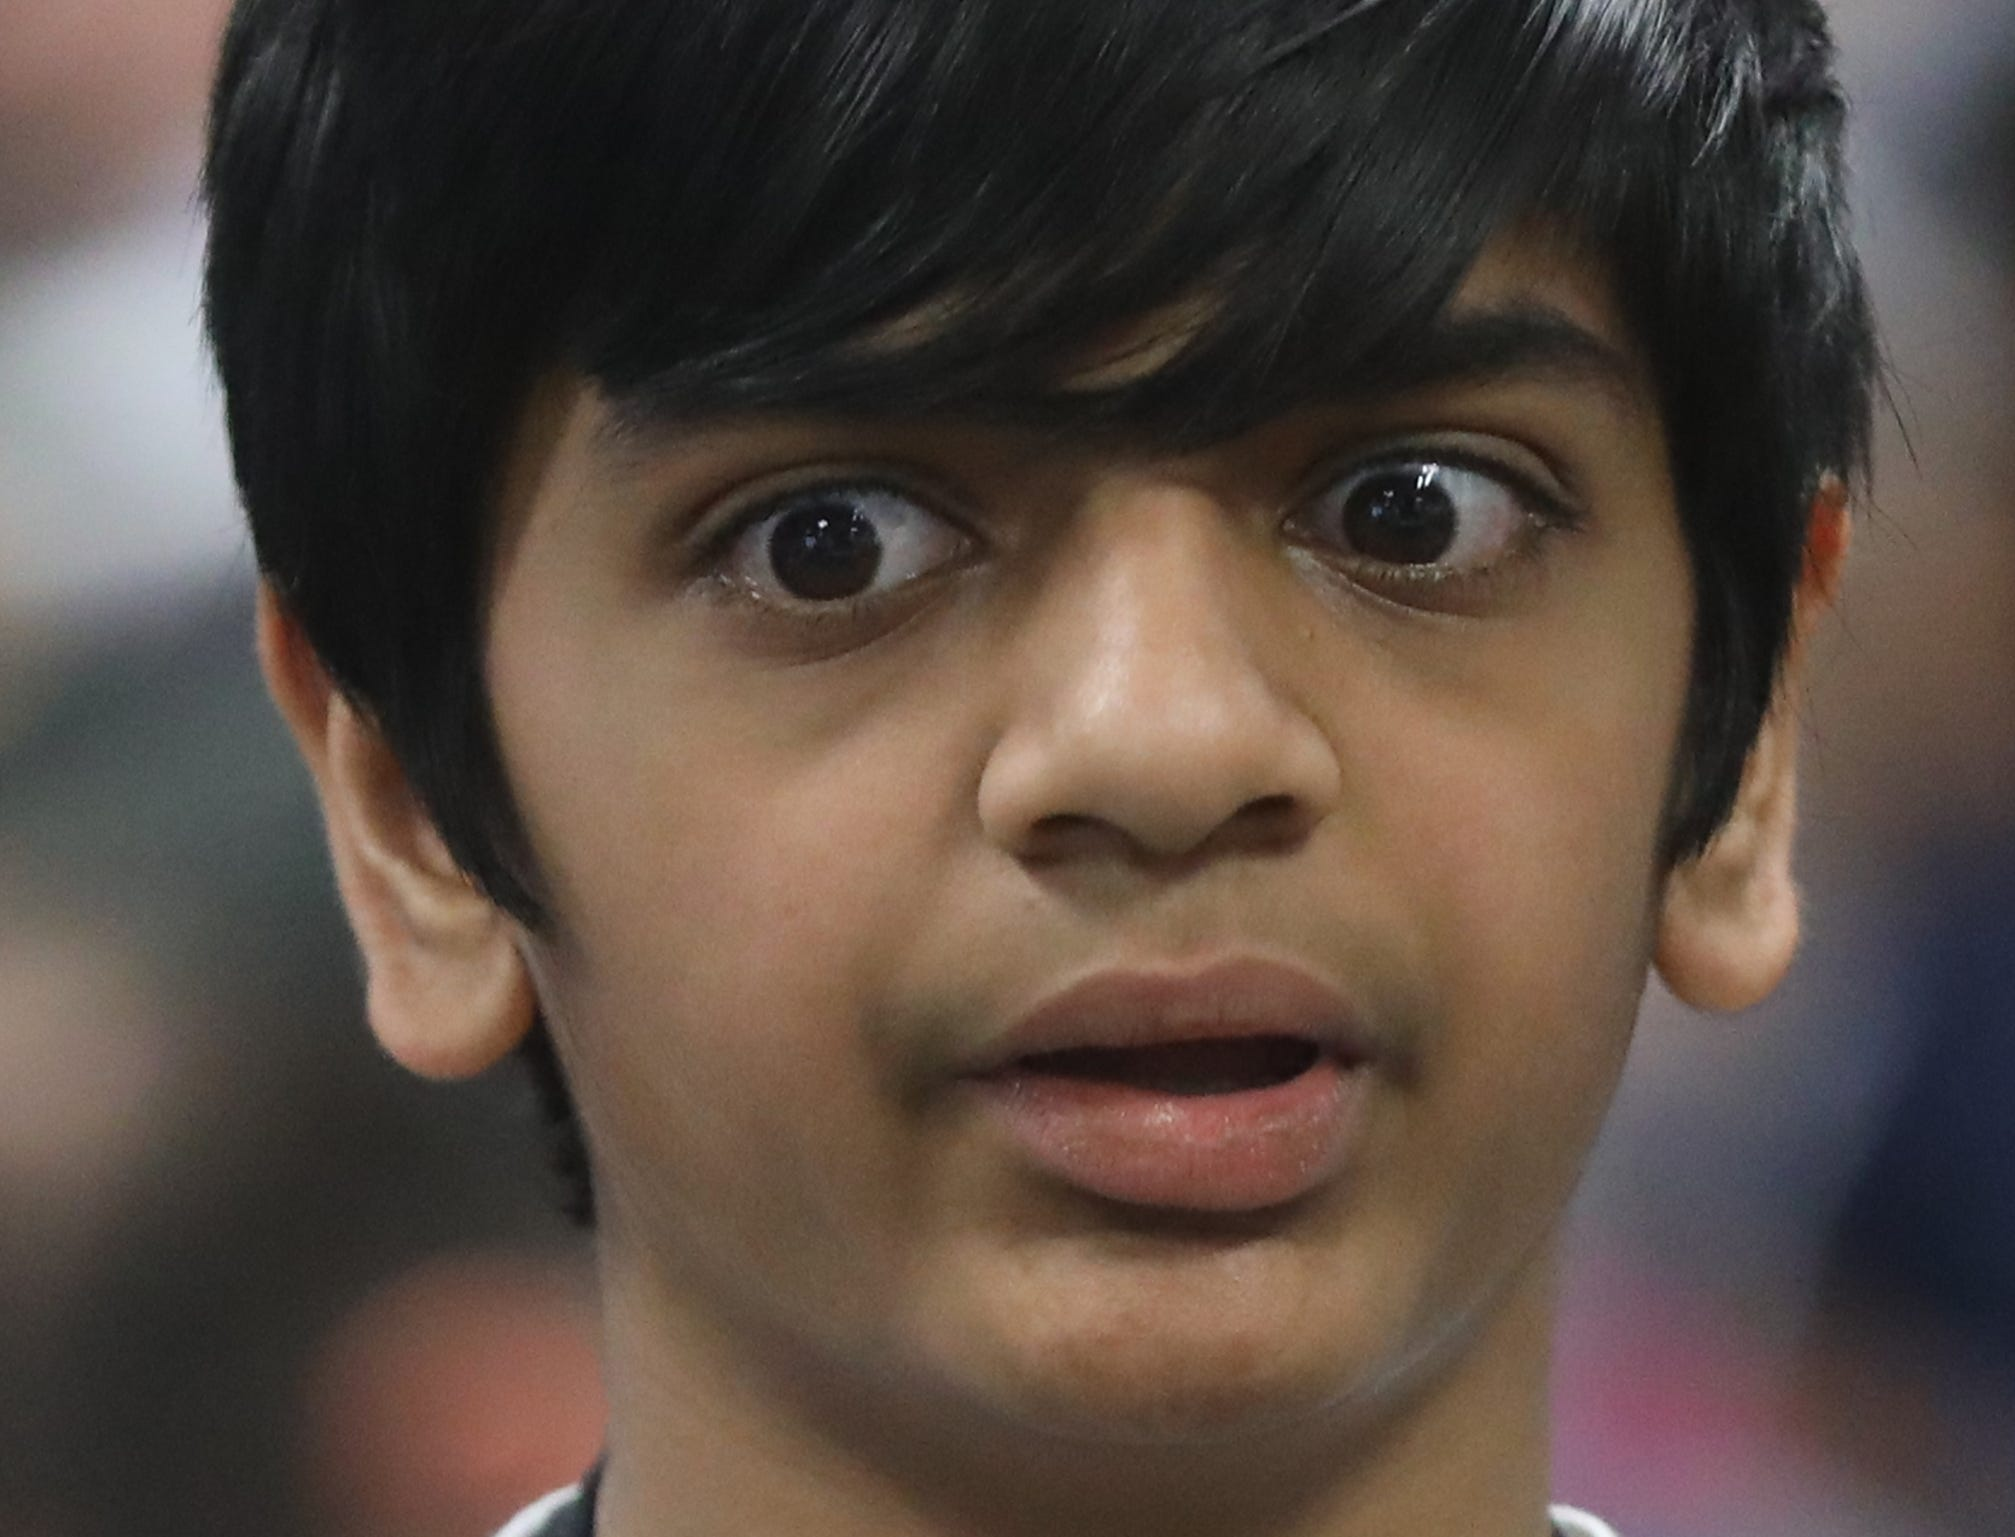 Krishan Patel, of Oakland, competes in the first round of the 2019 North Jersey Spelling Bee, in Paramus. Thursday, March 14, 2019